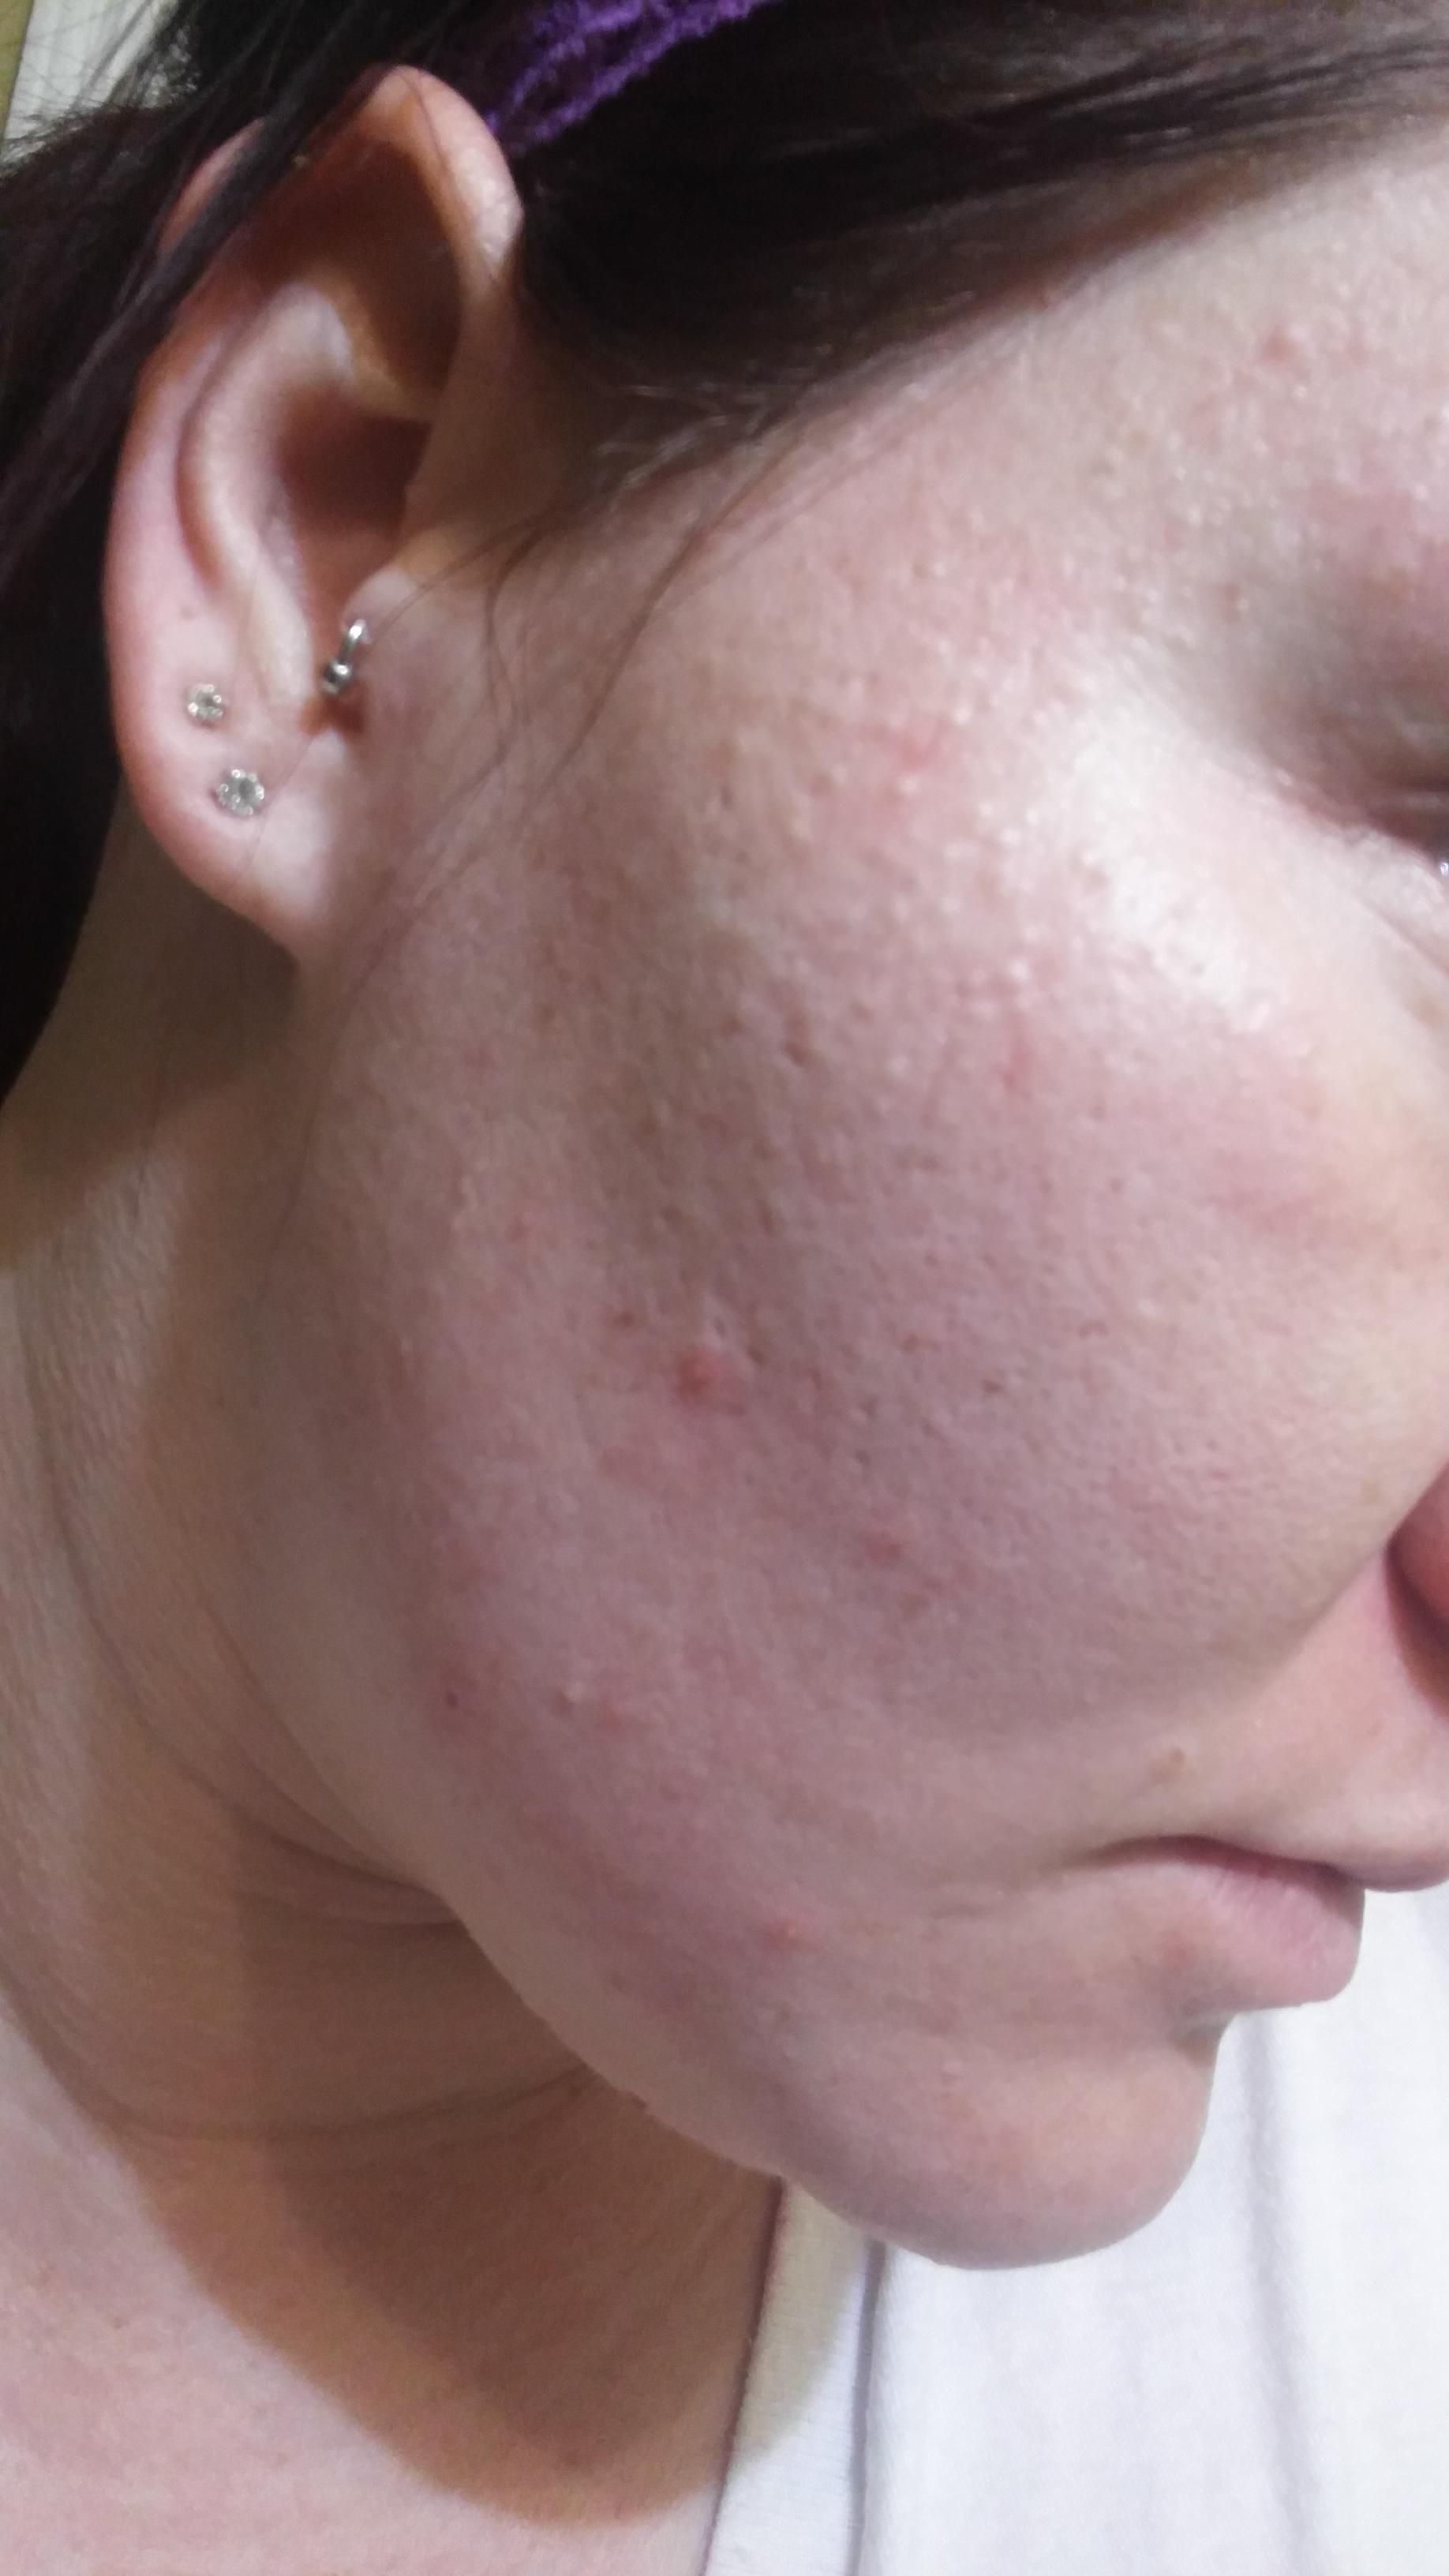 Facial white bumps under the skin picture 675